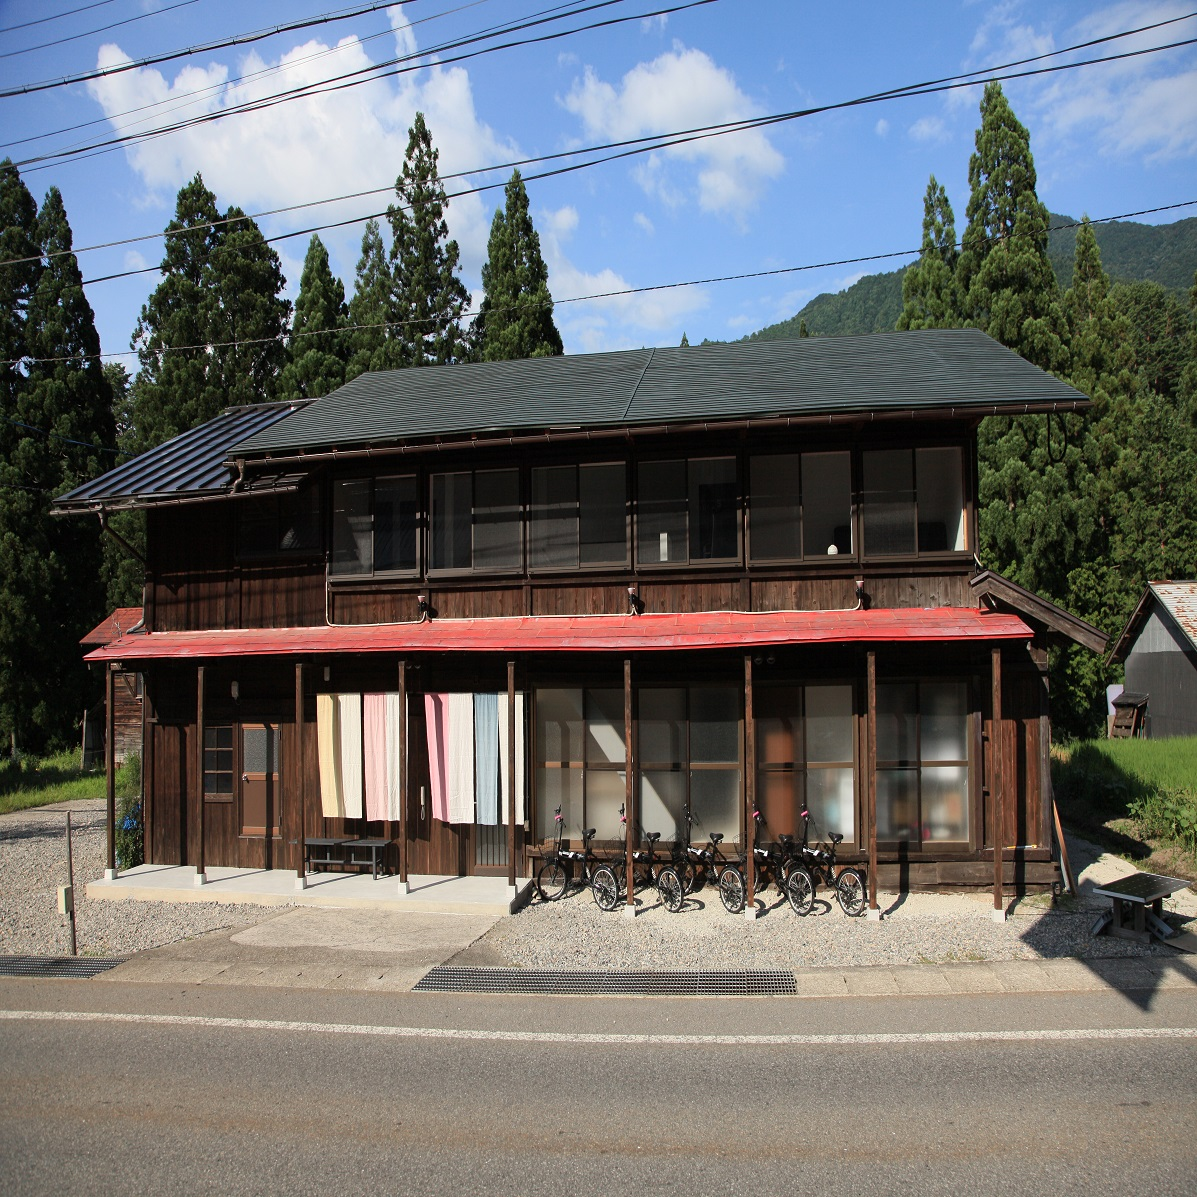 SHIRAKAWAGO TERRACE